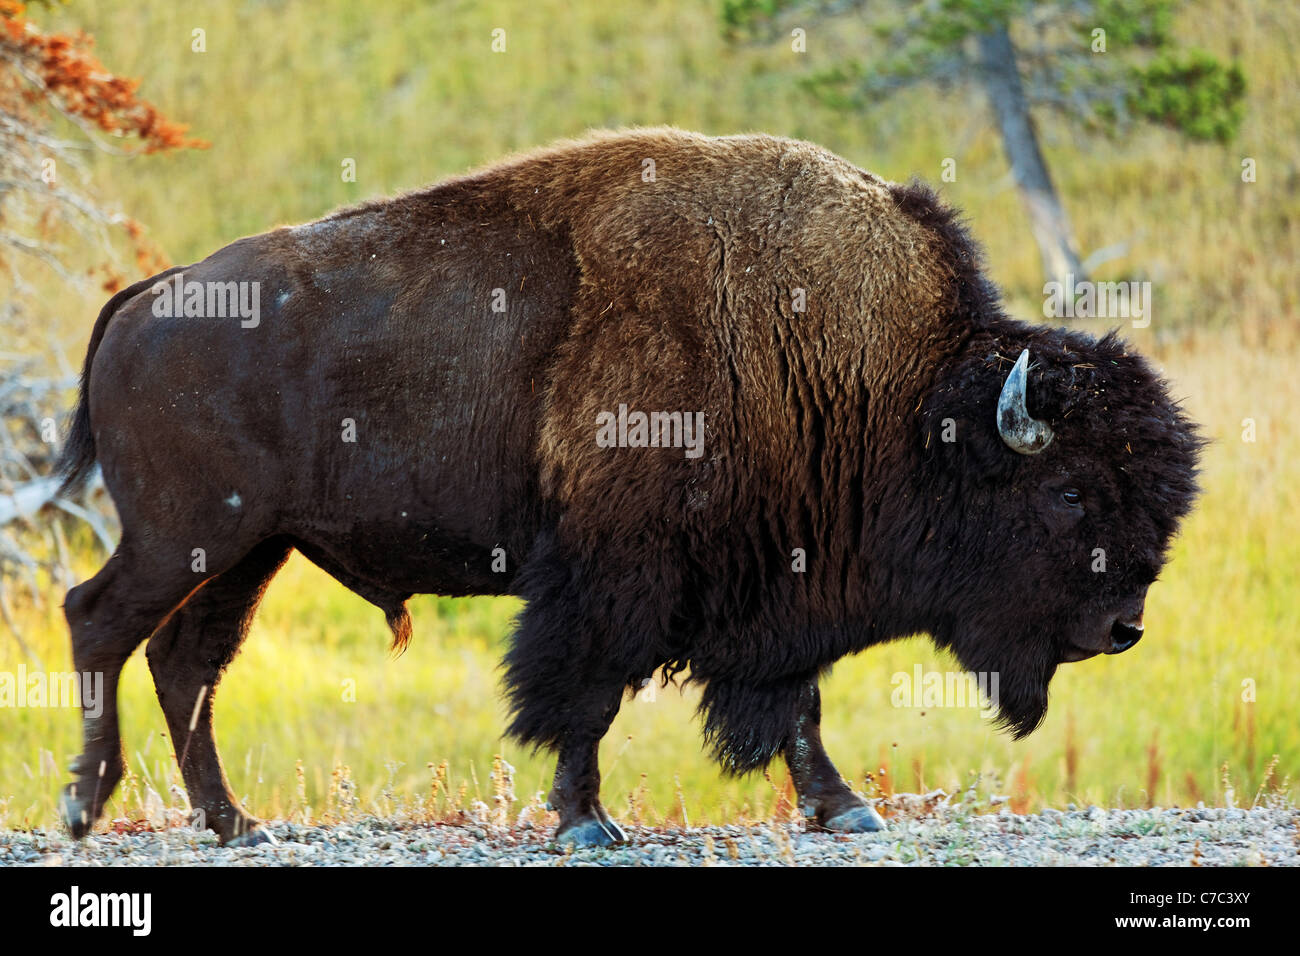 Male bison walking along gravel road shoulder with autumn foliage, Yellowstone National Park, Wyoming, USA - Stock Image